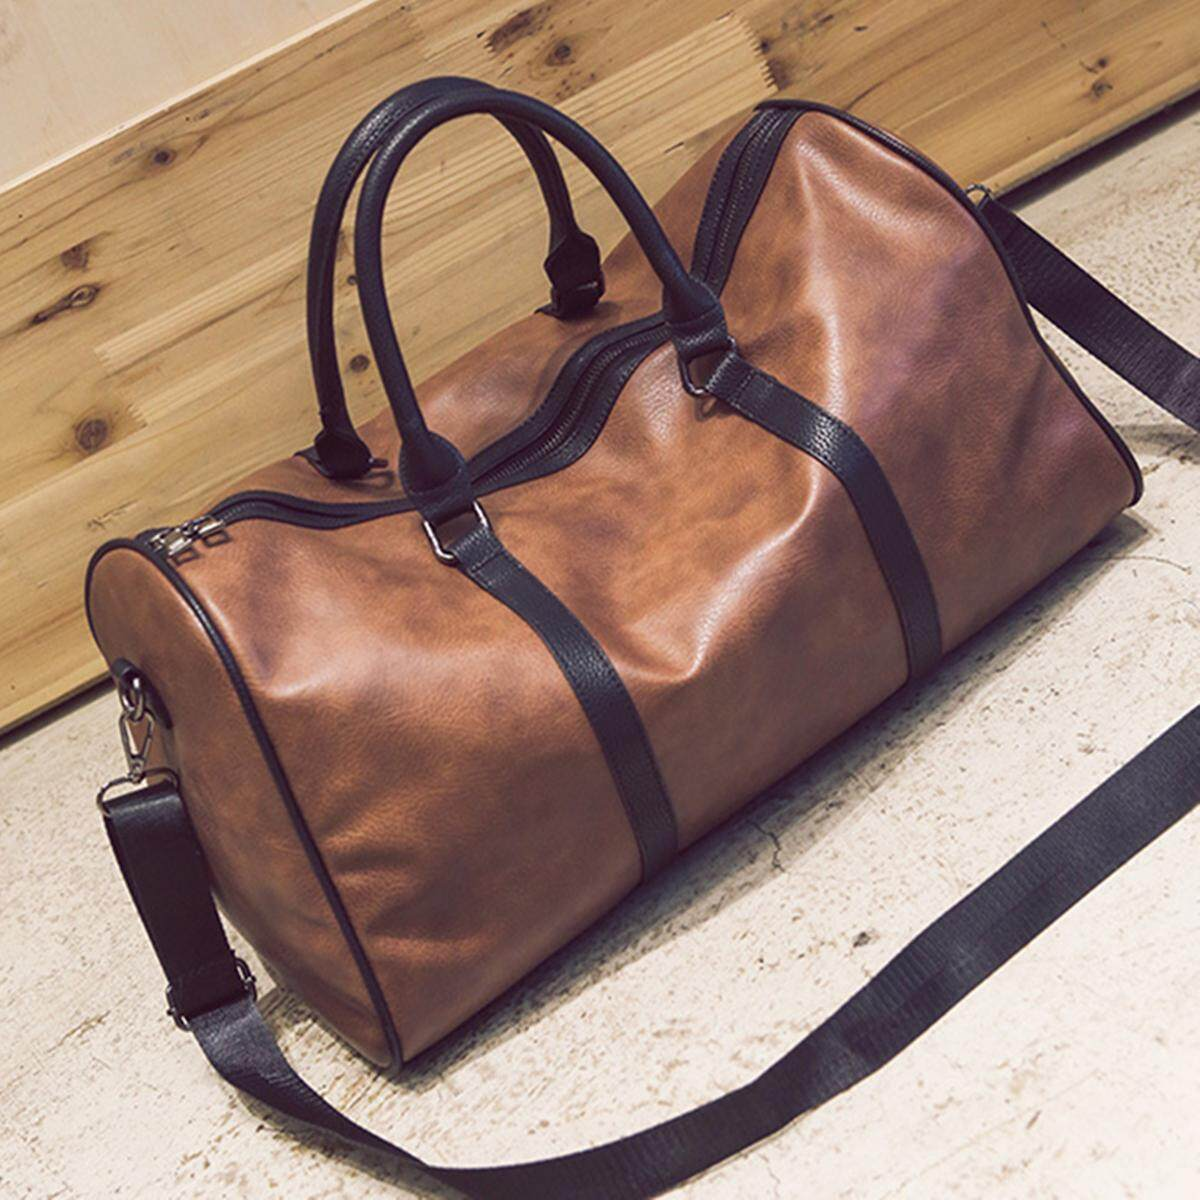 a83ff179fe8 Women Men Leather Outdoor Large Gym Duffel Bag Travel Weekend Overnight  Luggage  brown